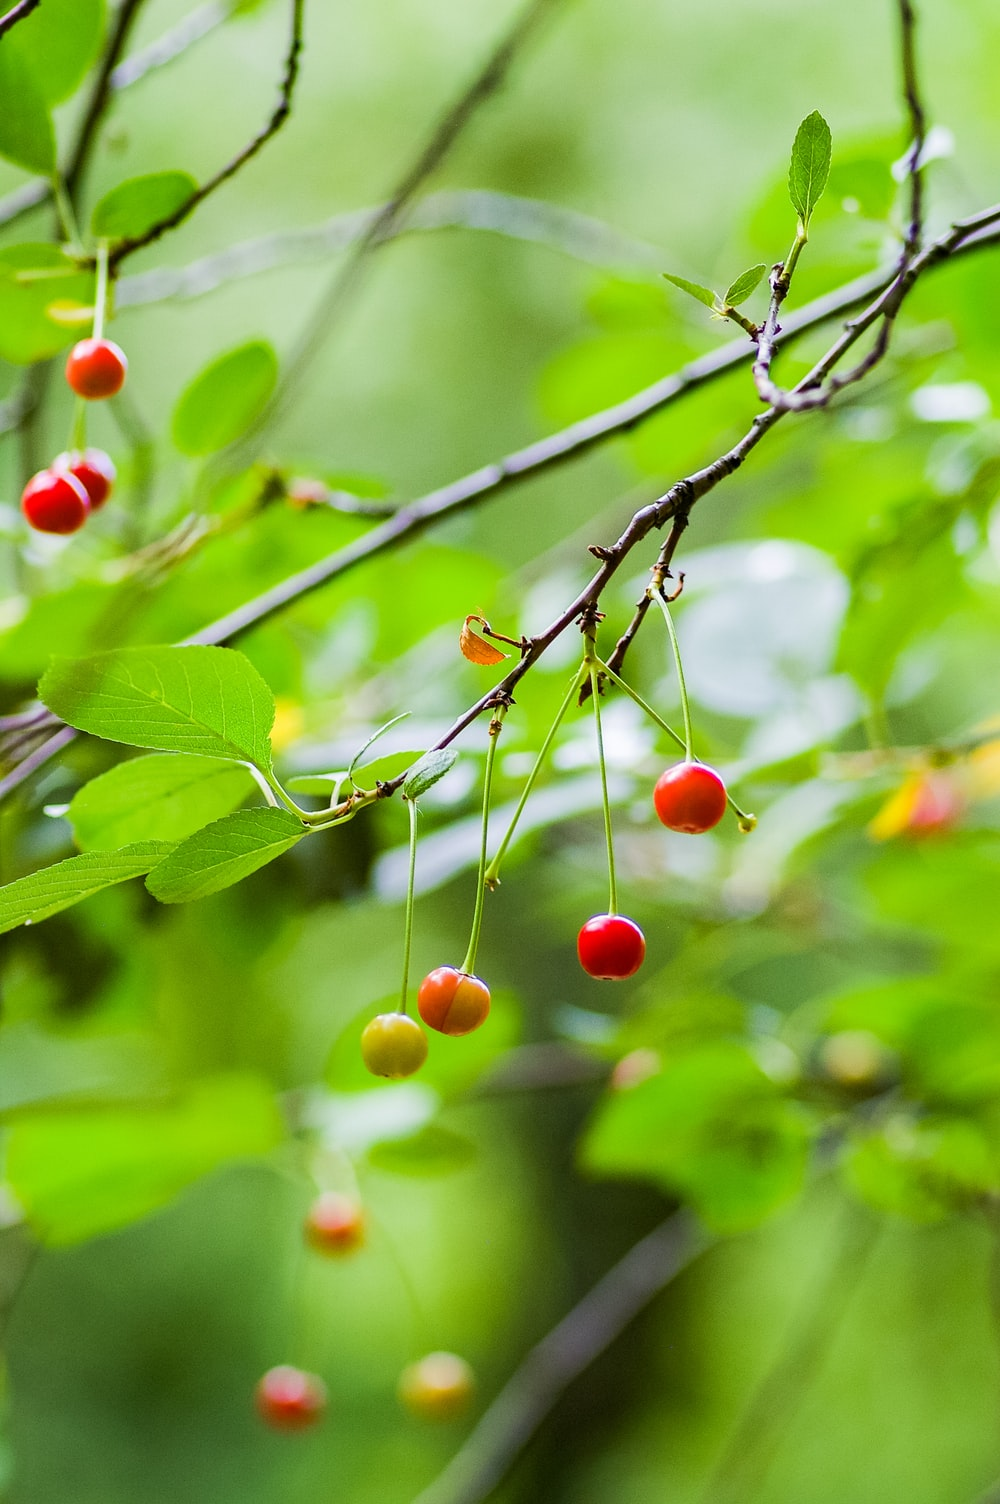 small round red and yellow fruits